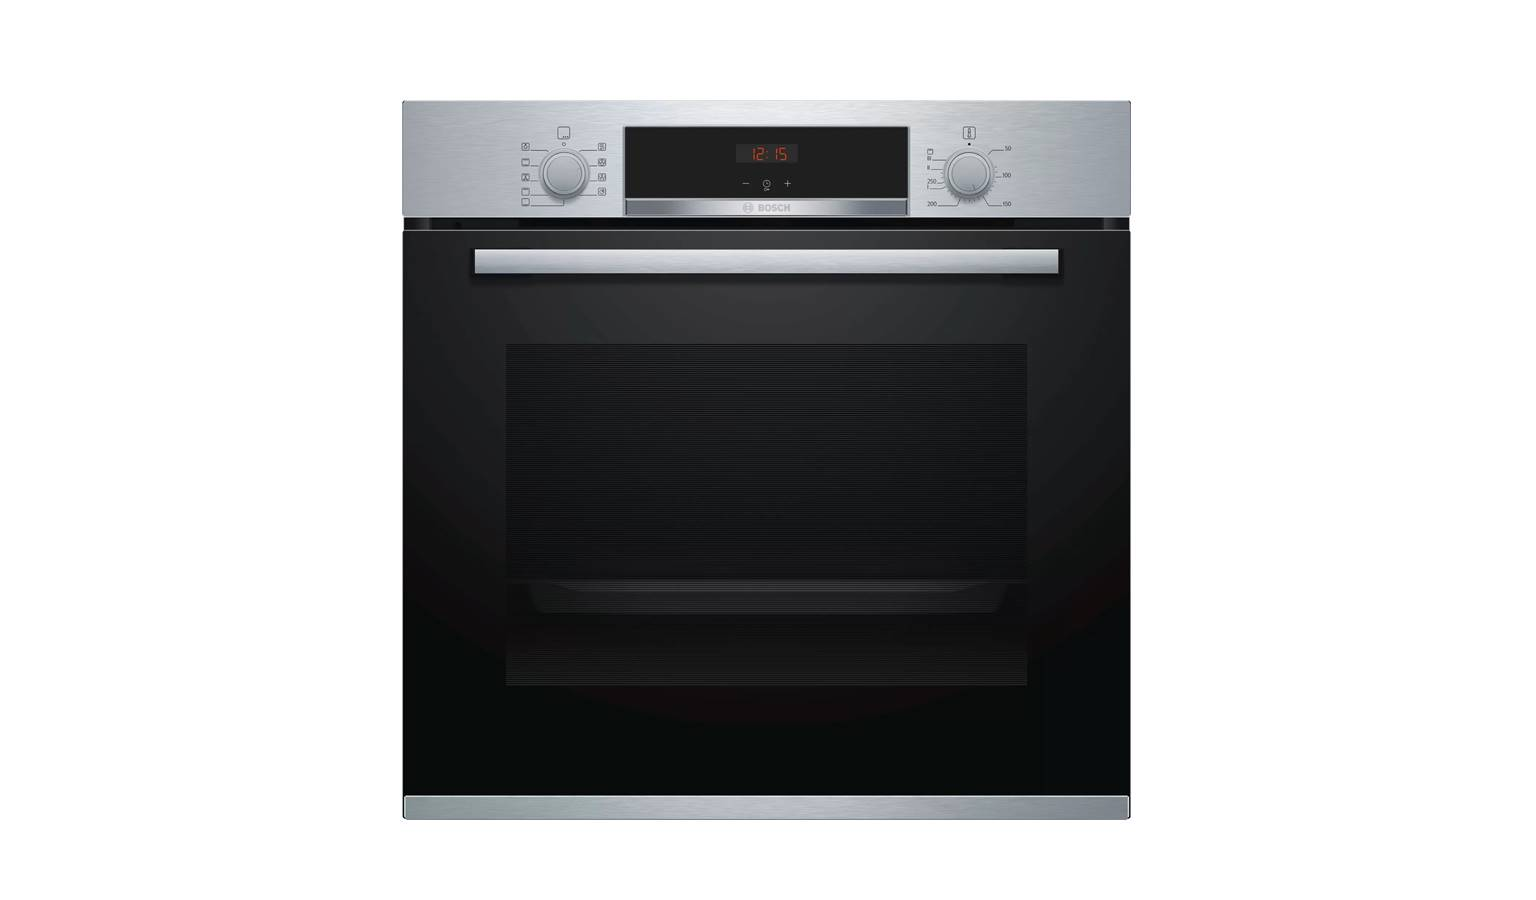 bosch hba 534bs0a 71l built in microwave oven stainless steel